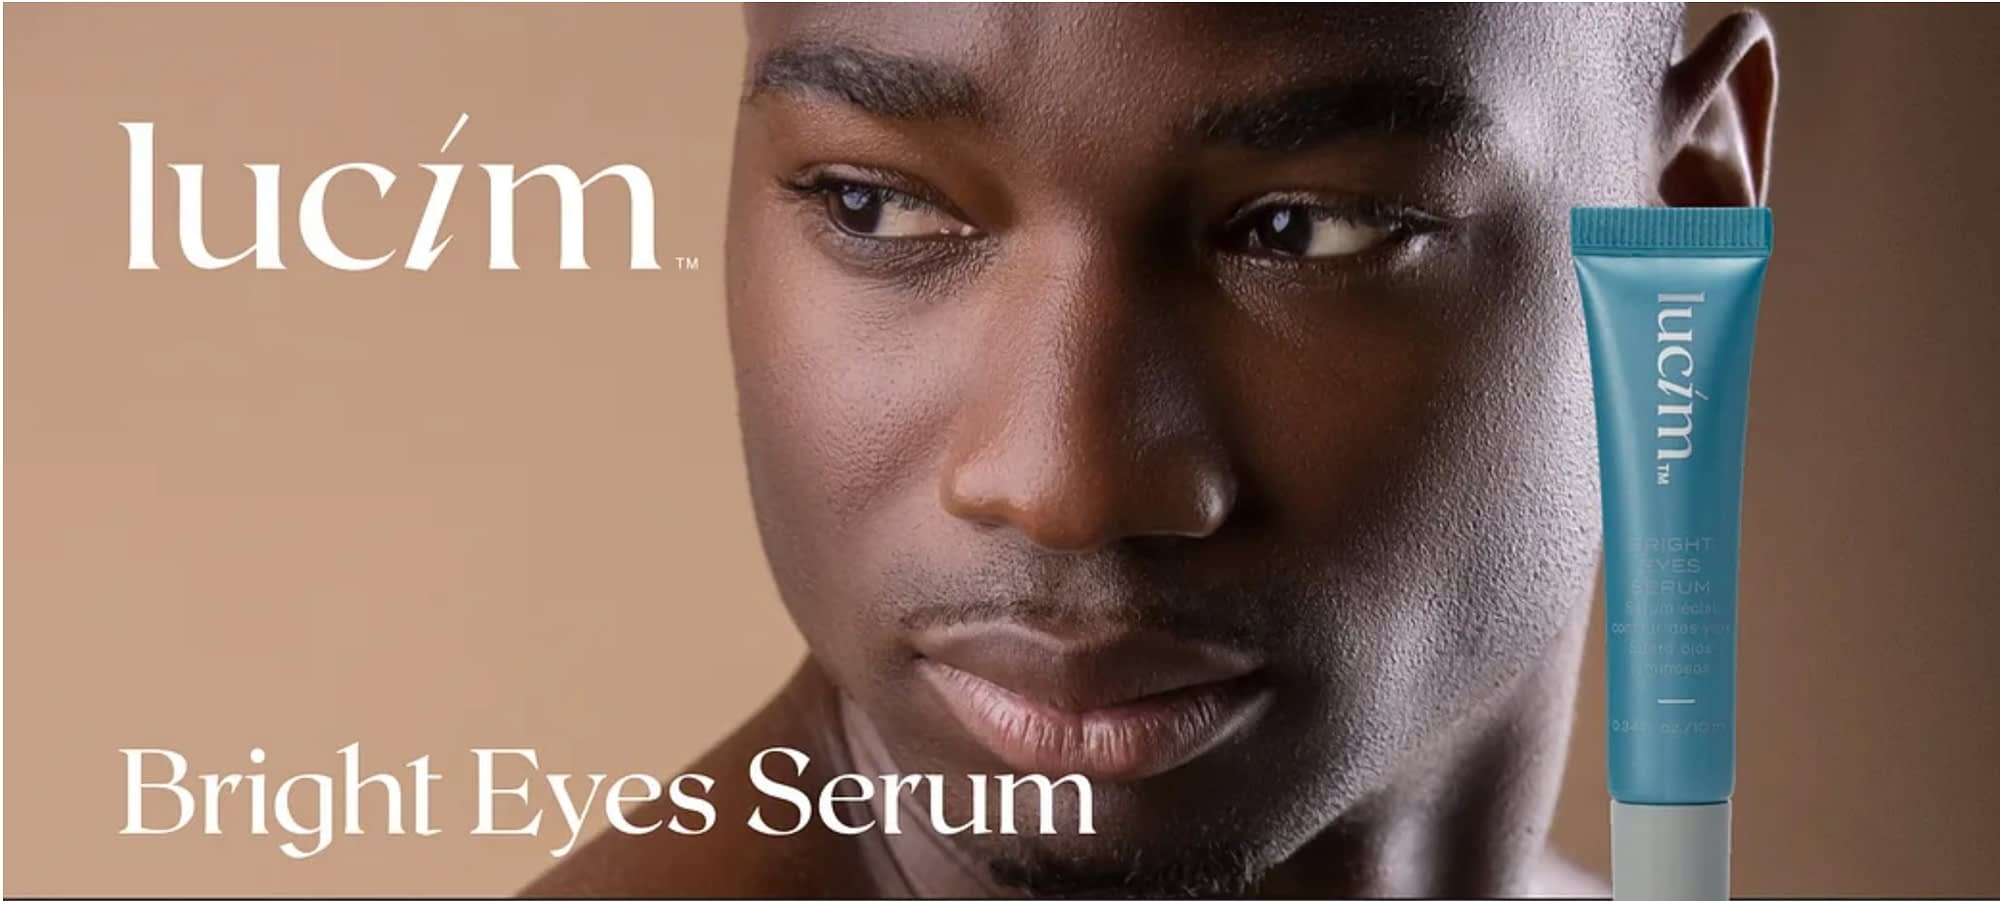 Bright Eyes Serum front page